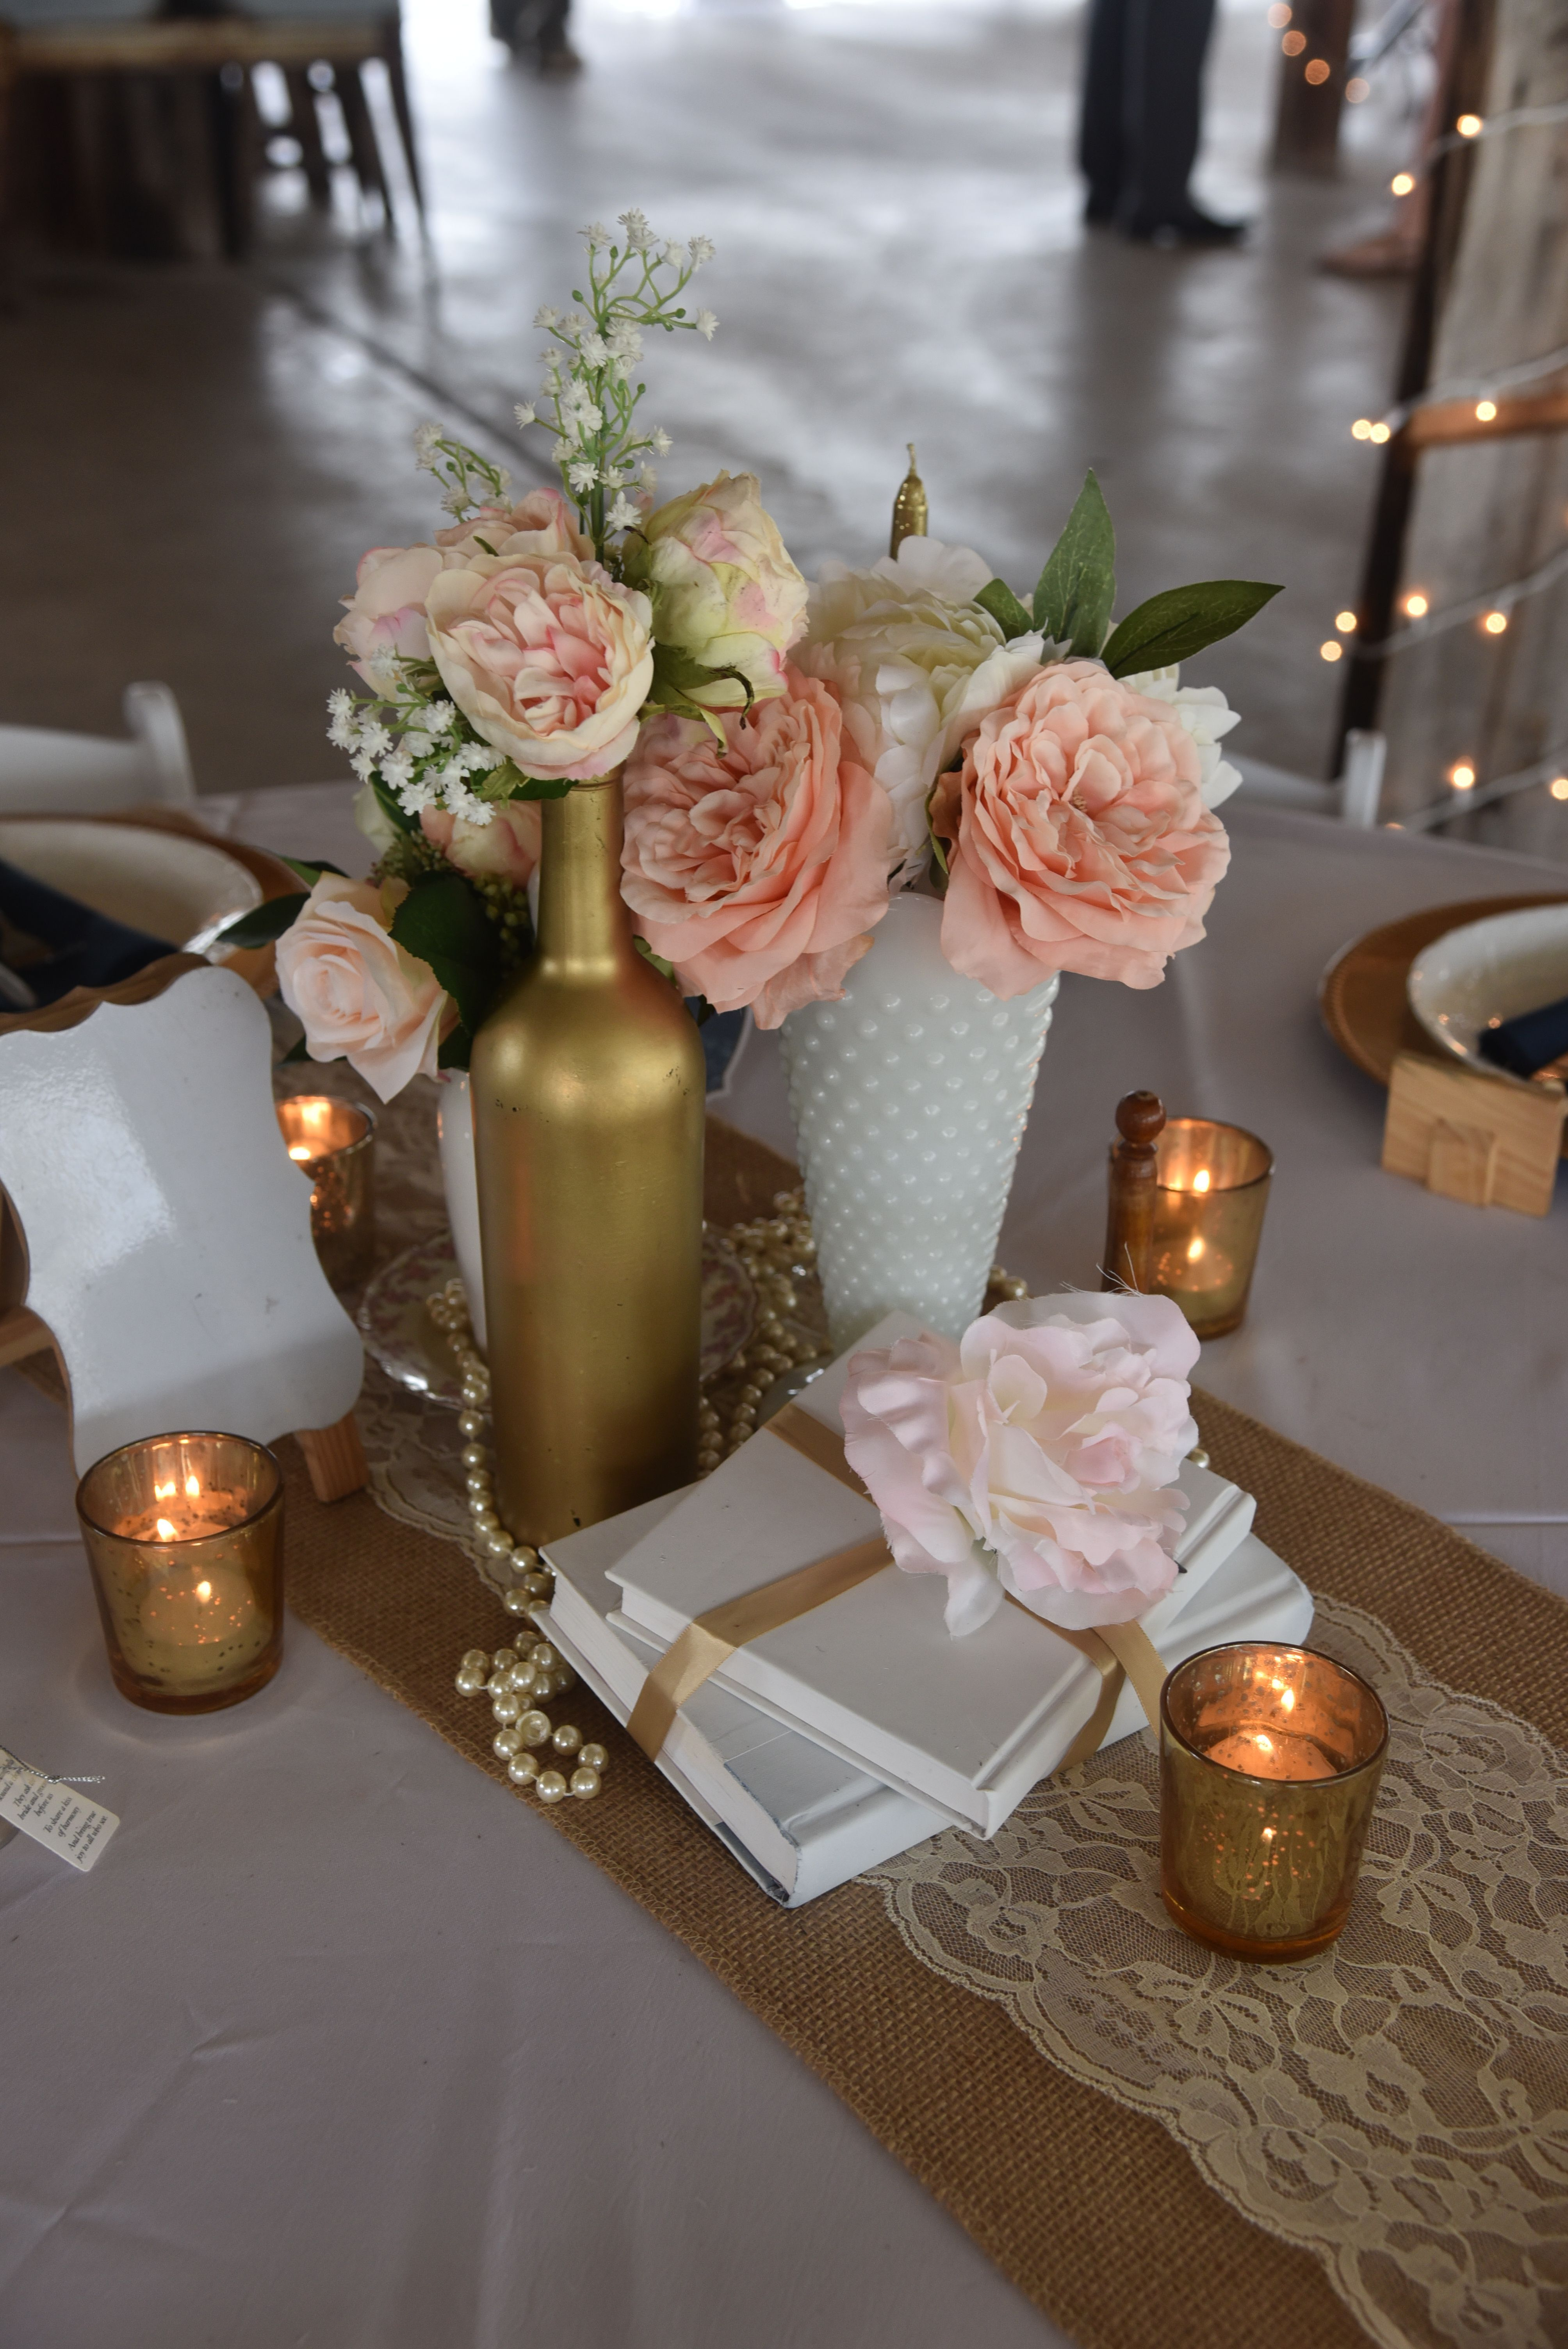 Exhilarating Vintage Wine Gift Ideas in 2020 | Wedding centerpieces, Burlap  party, Gold wedding decorations